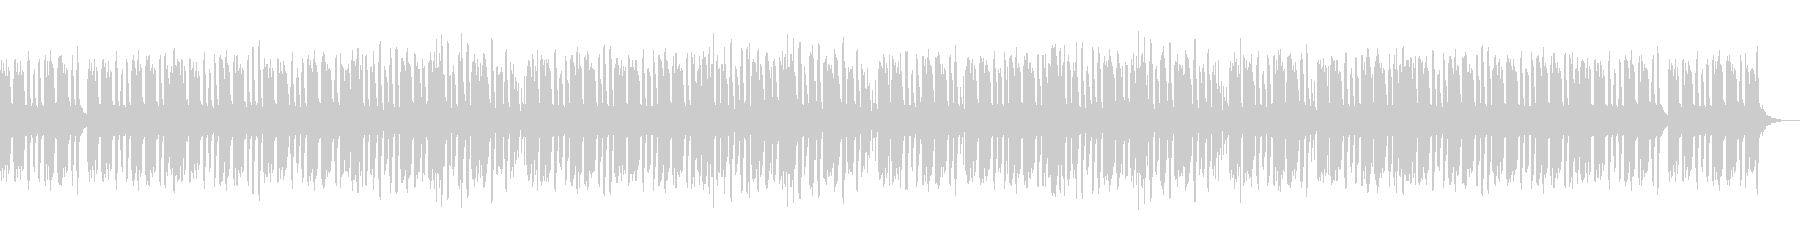 For commercials, videos, sinking time, etc.'s unreproduced waveform